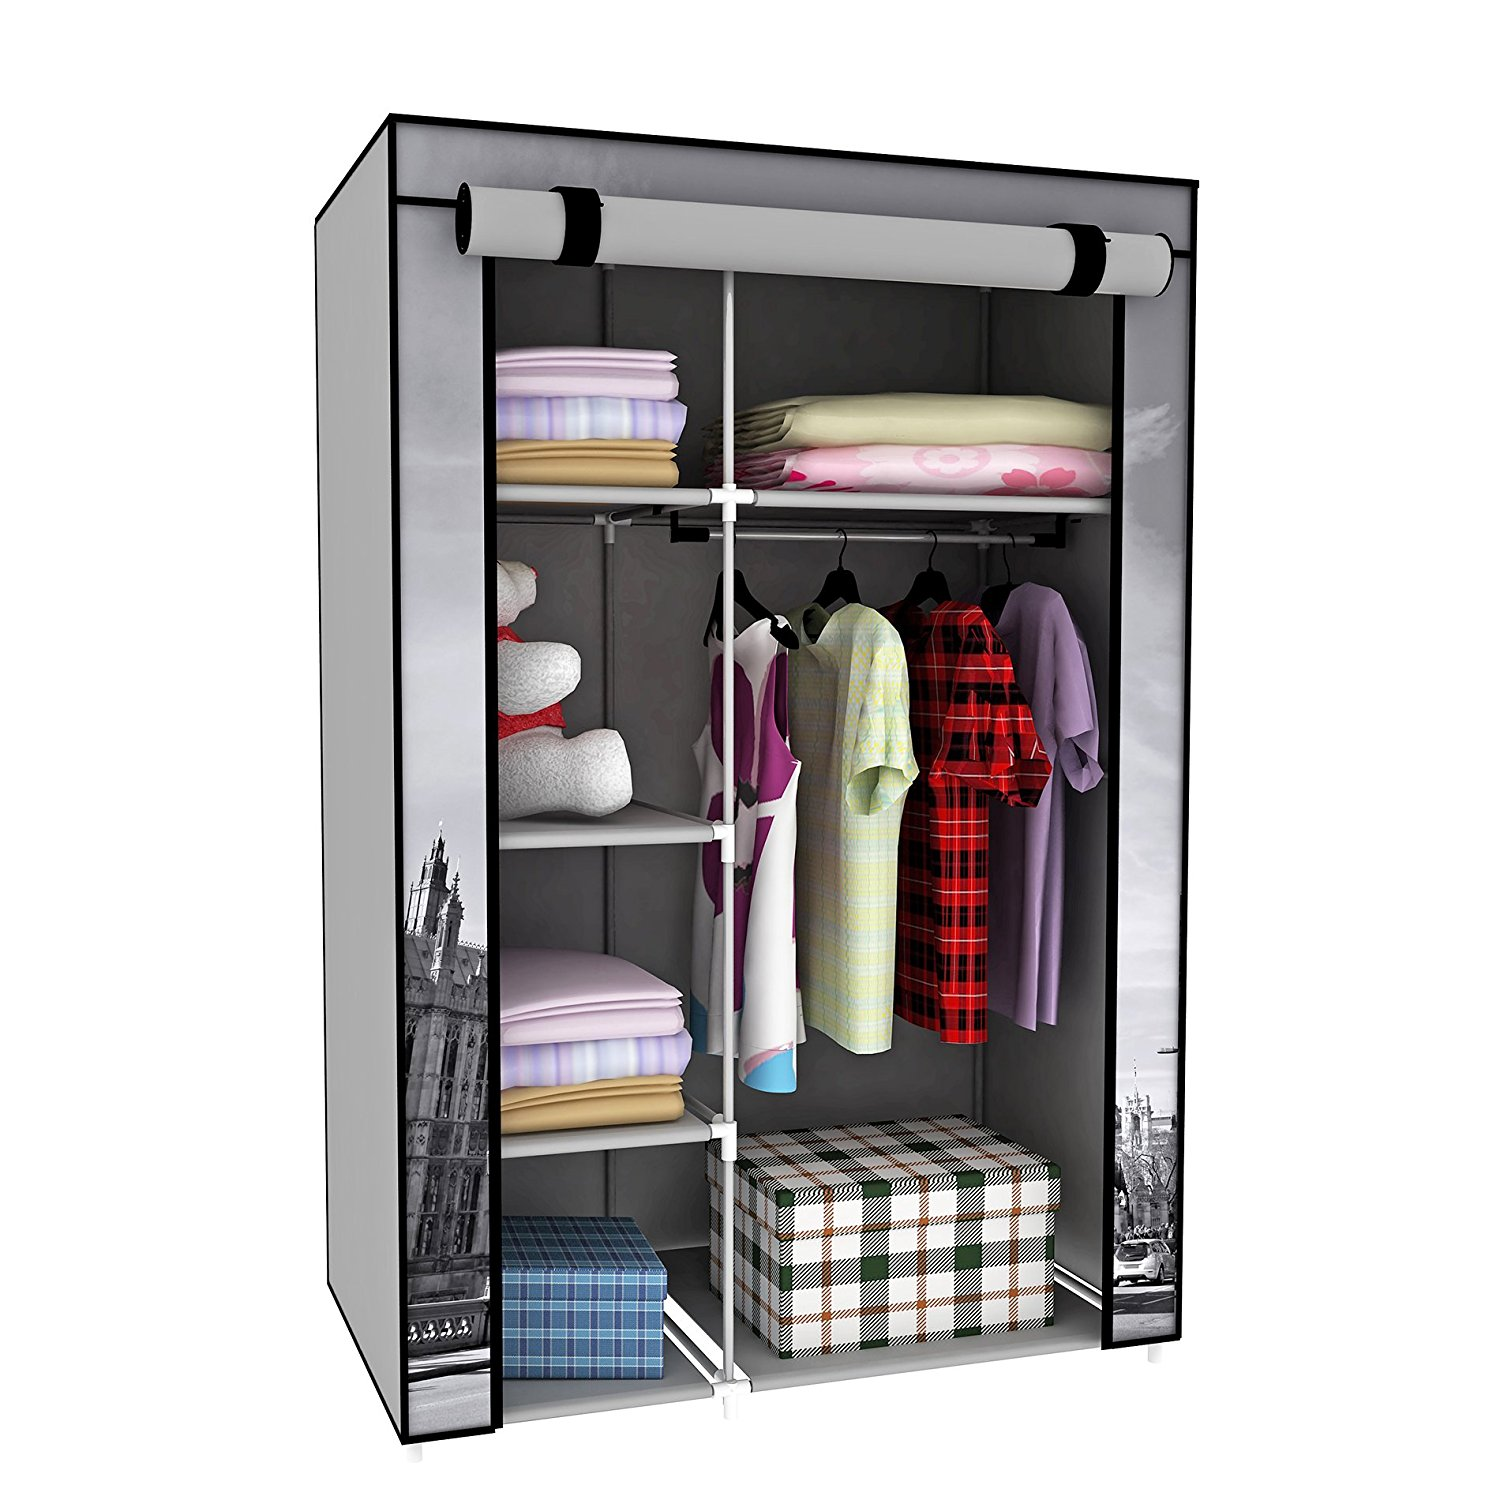 portable wardrobe amazon.com: switch innovation storage closet portable temporary clothing  wardrobe, free-standing clothes rack, OIBOPUY